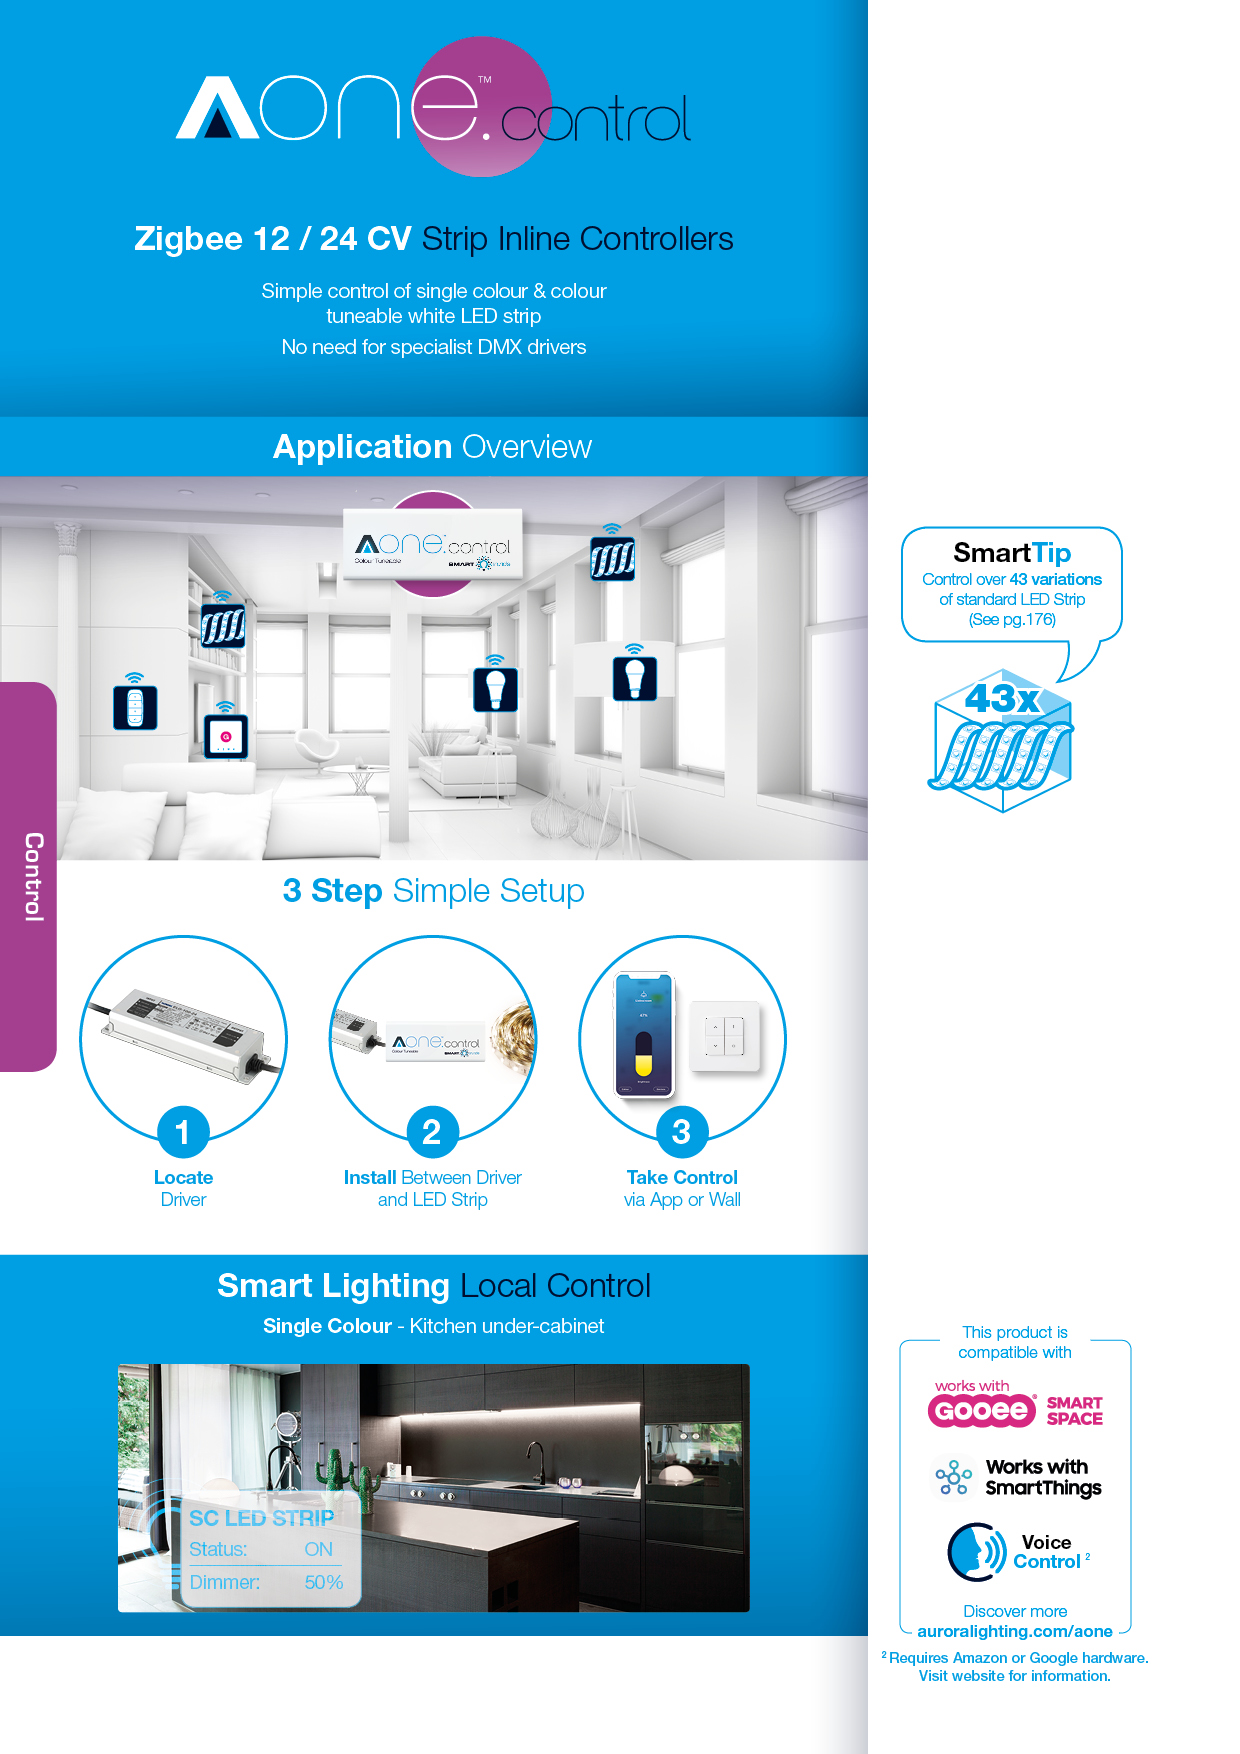 Aurora's AOneTM smart lighting, sensing and control platform